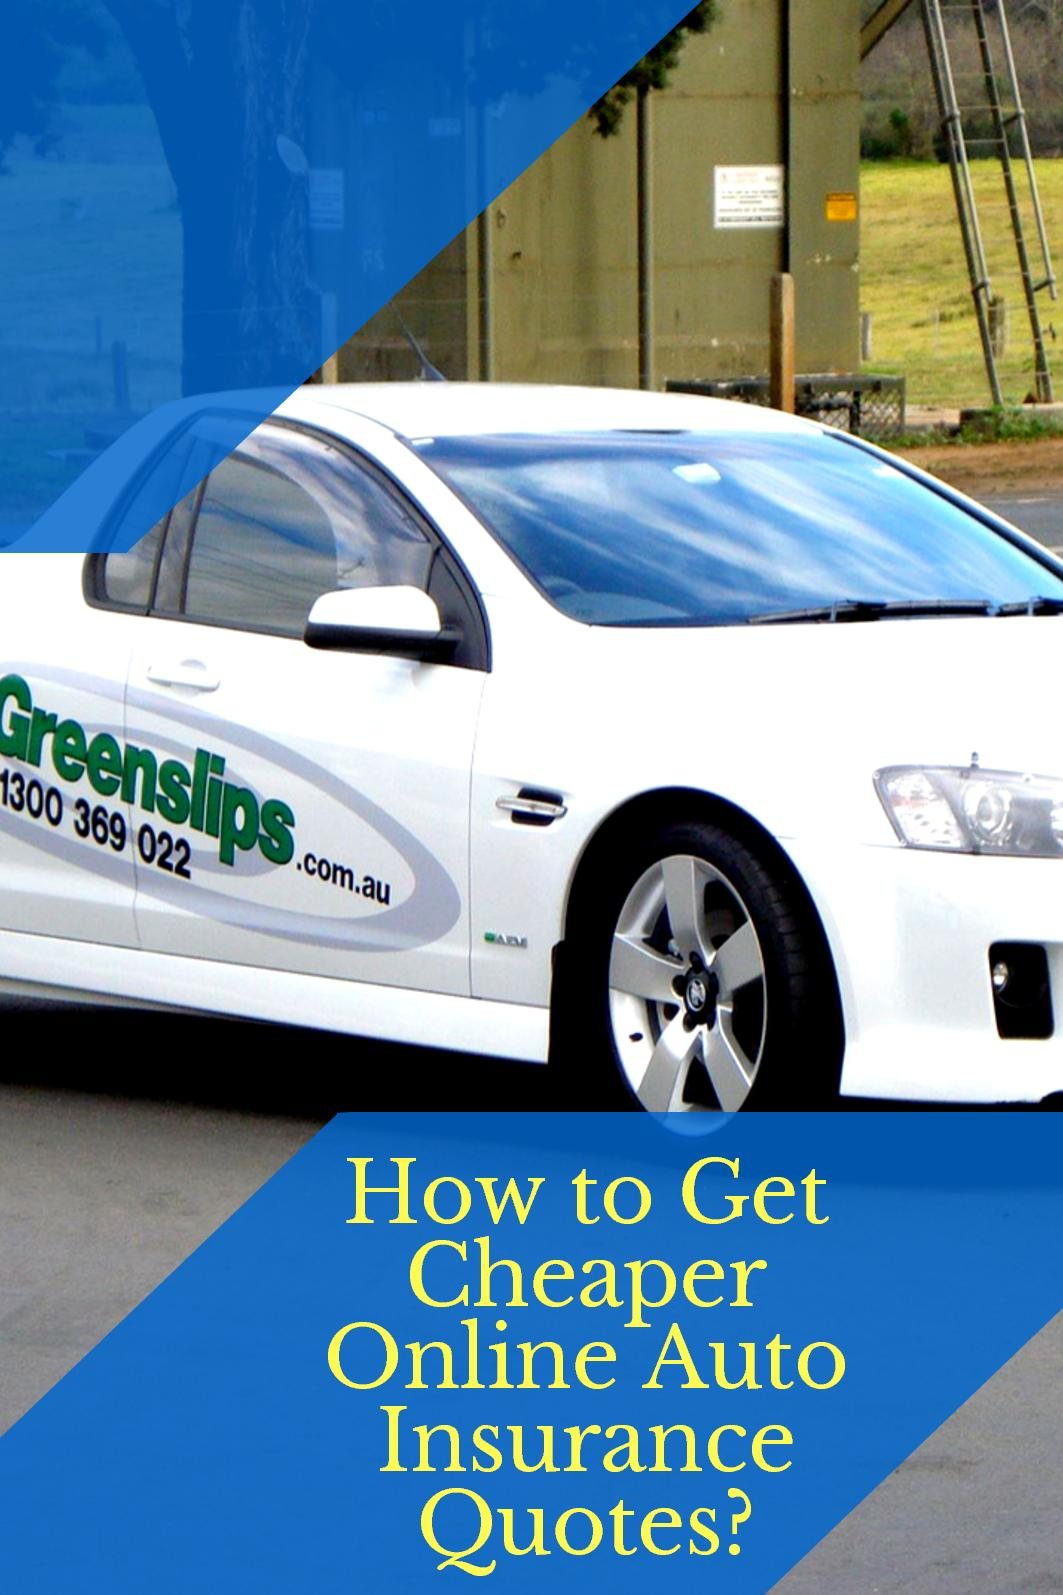 Online Auto Insurance Quotes >> Calameo How To Get Cheaper Online Auto Insurance Quotes